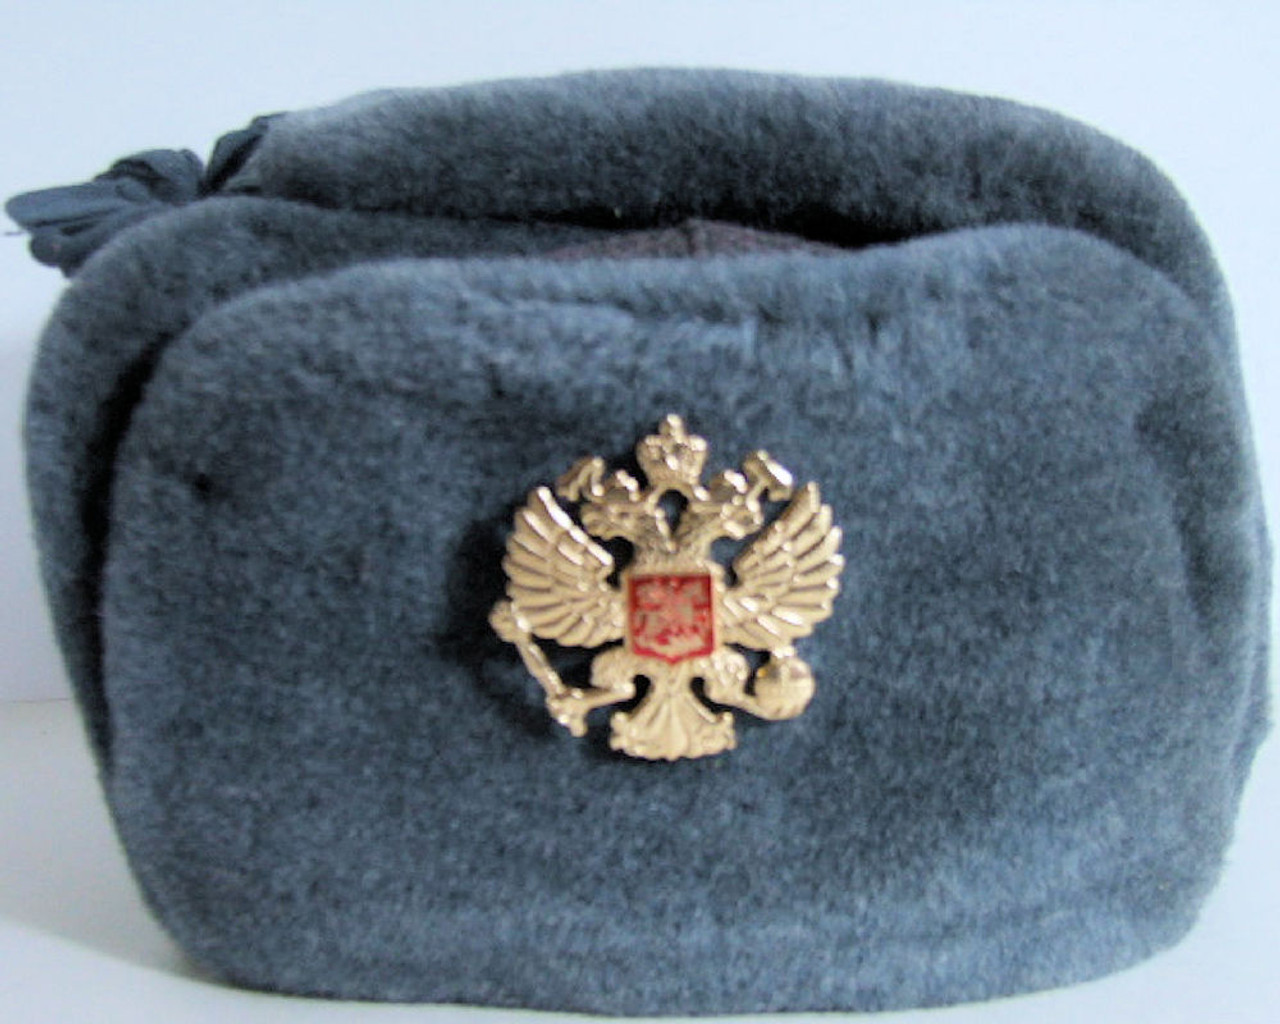 4def7fa2b USSR Vintage Russian Army Ushanka Winter Hat, with Soviet Double Headed  Eagle Insignia (Size 58 cm)